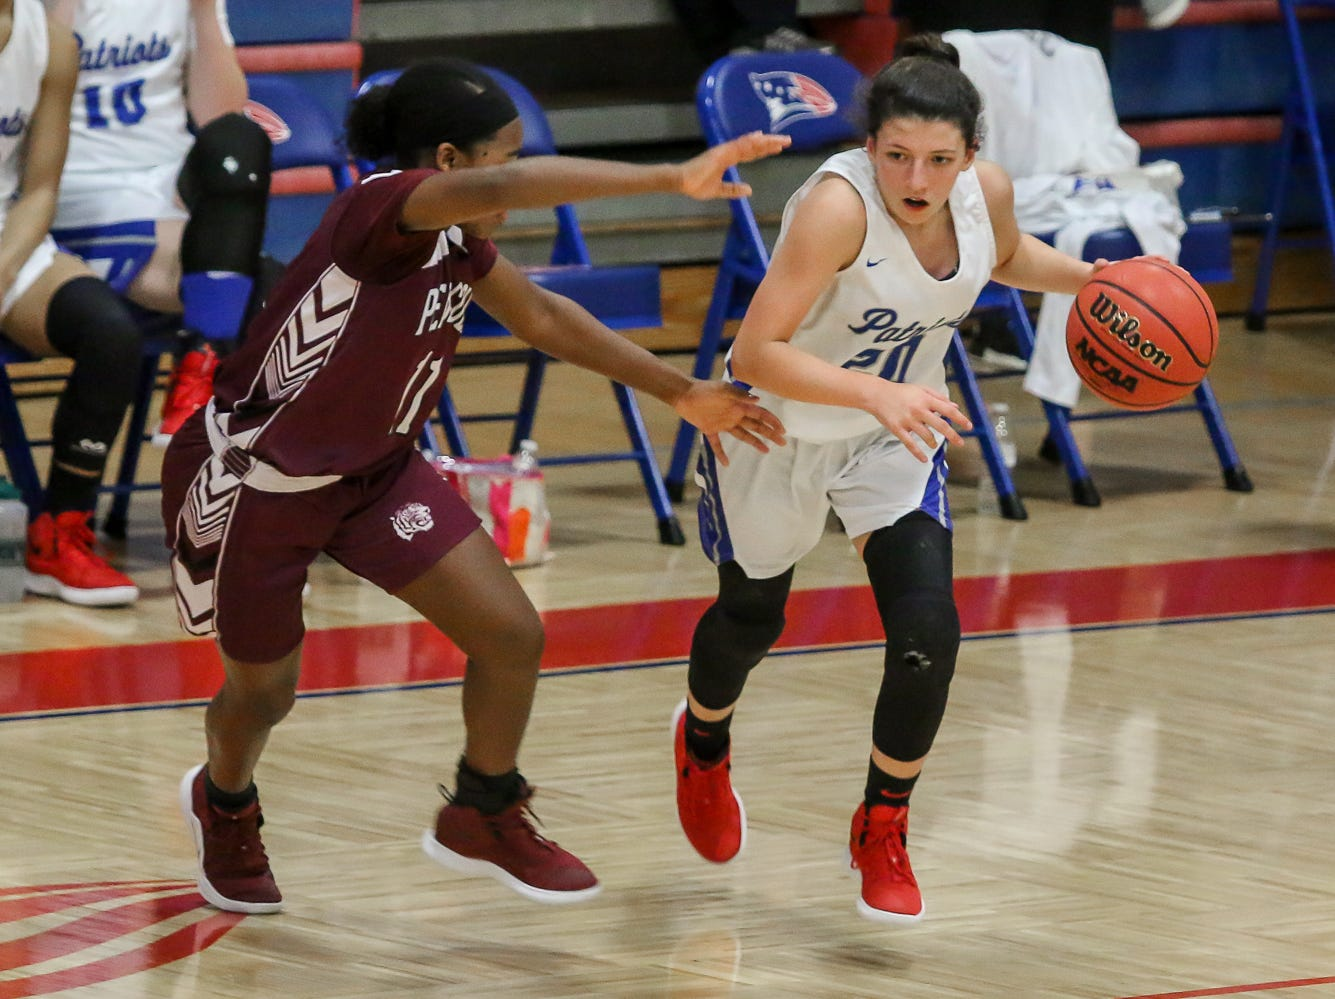 Pace's Shay Crooks (20) works to move the ball up the court against PHS' Nala Baker (11) at Pace High School on Friday, January 4, 2019.